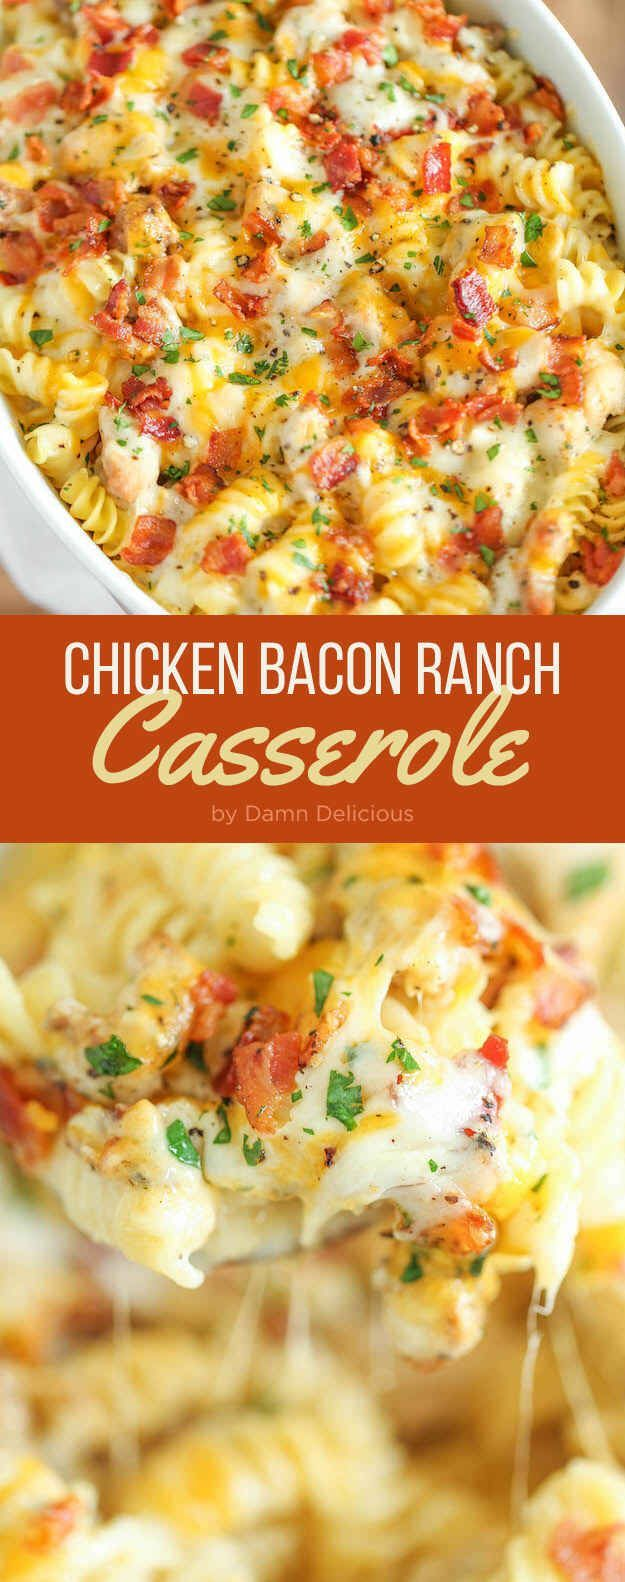 Chicken bacon ranch casserole                                                                                                                                                      More